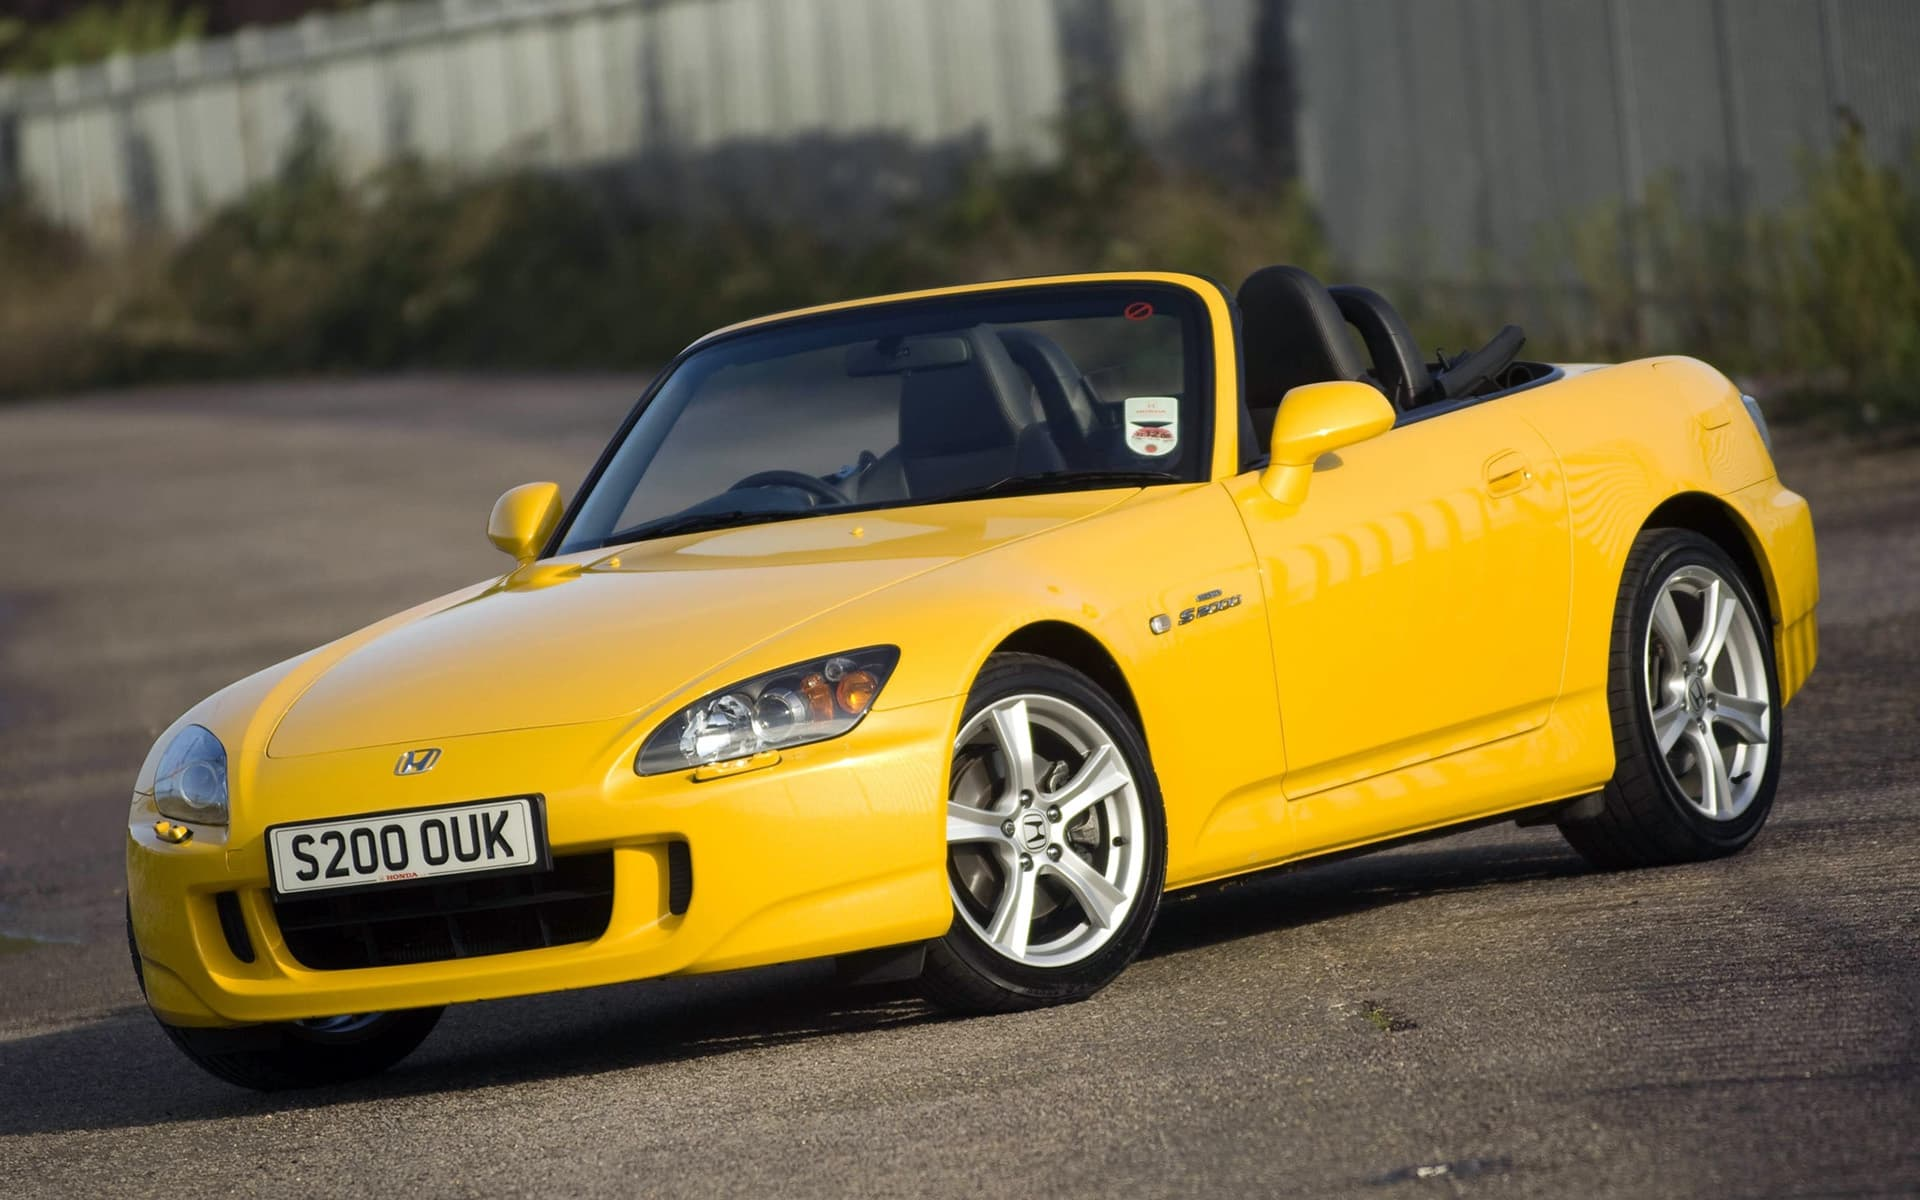 2003 Honda S2000 Wallpapers 1920x1200, images, Black ...